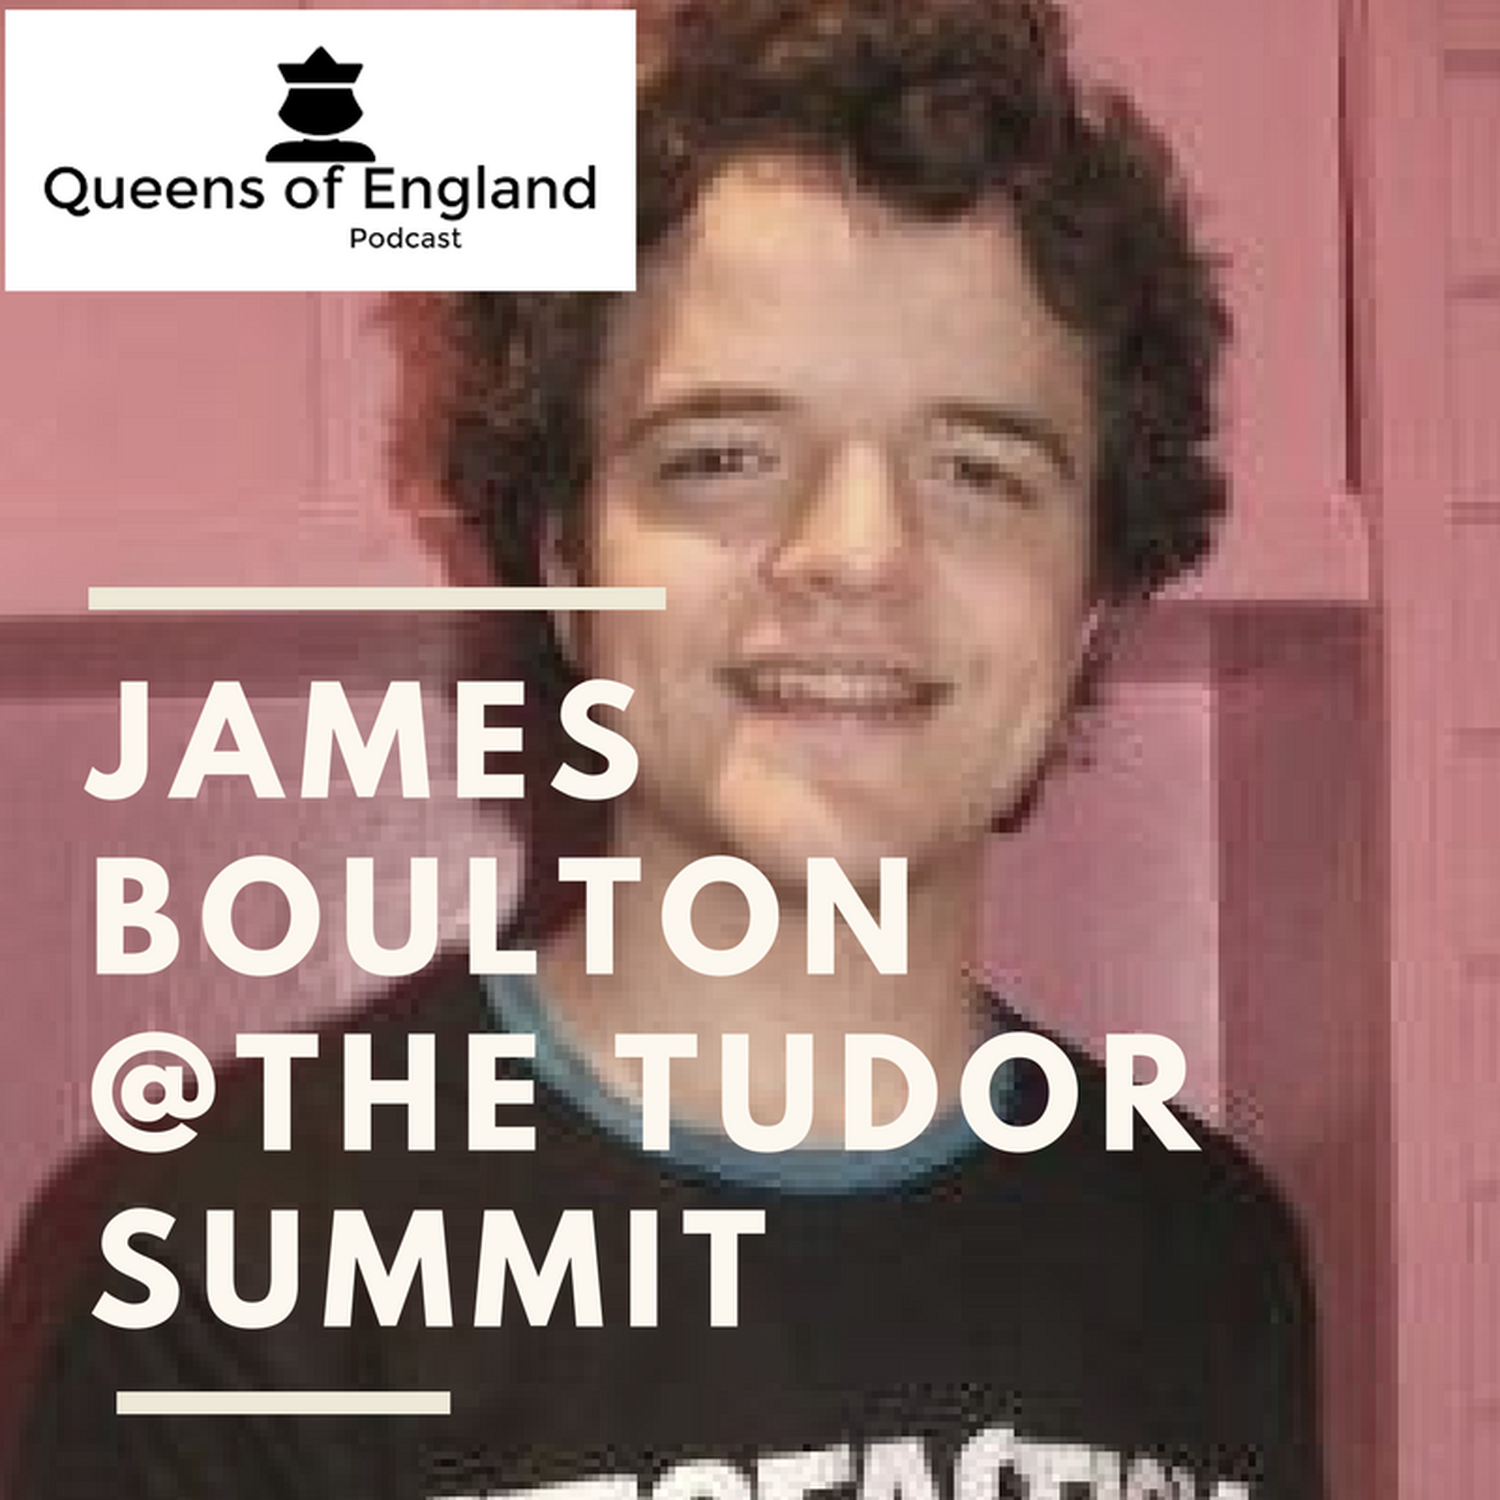 Supplementary: James Boulton at the Tudor Summit